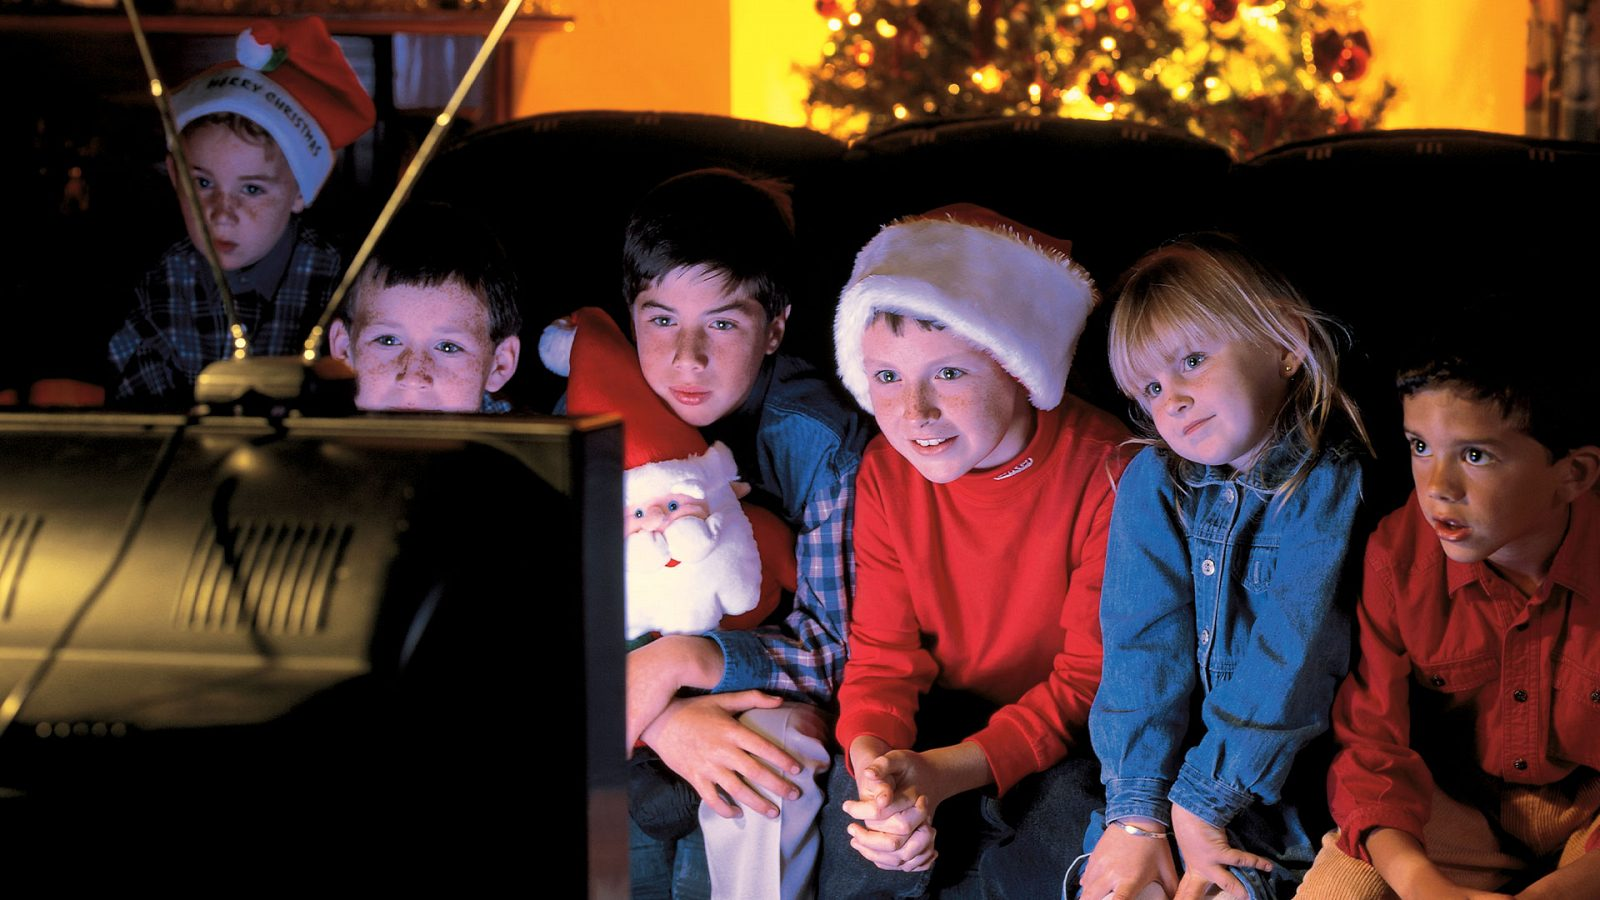 Kids in holiday accessories watching TV